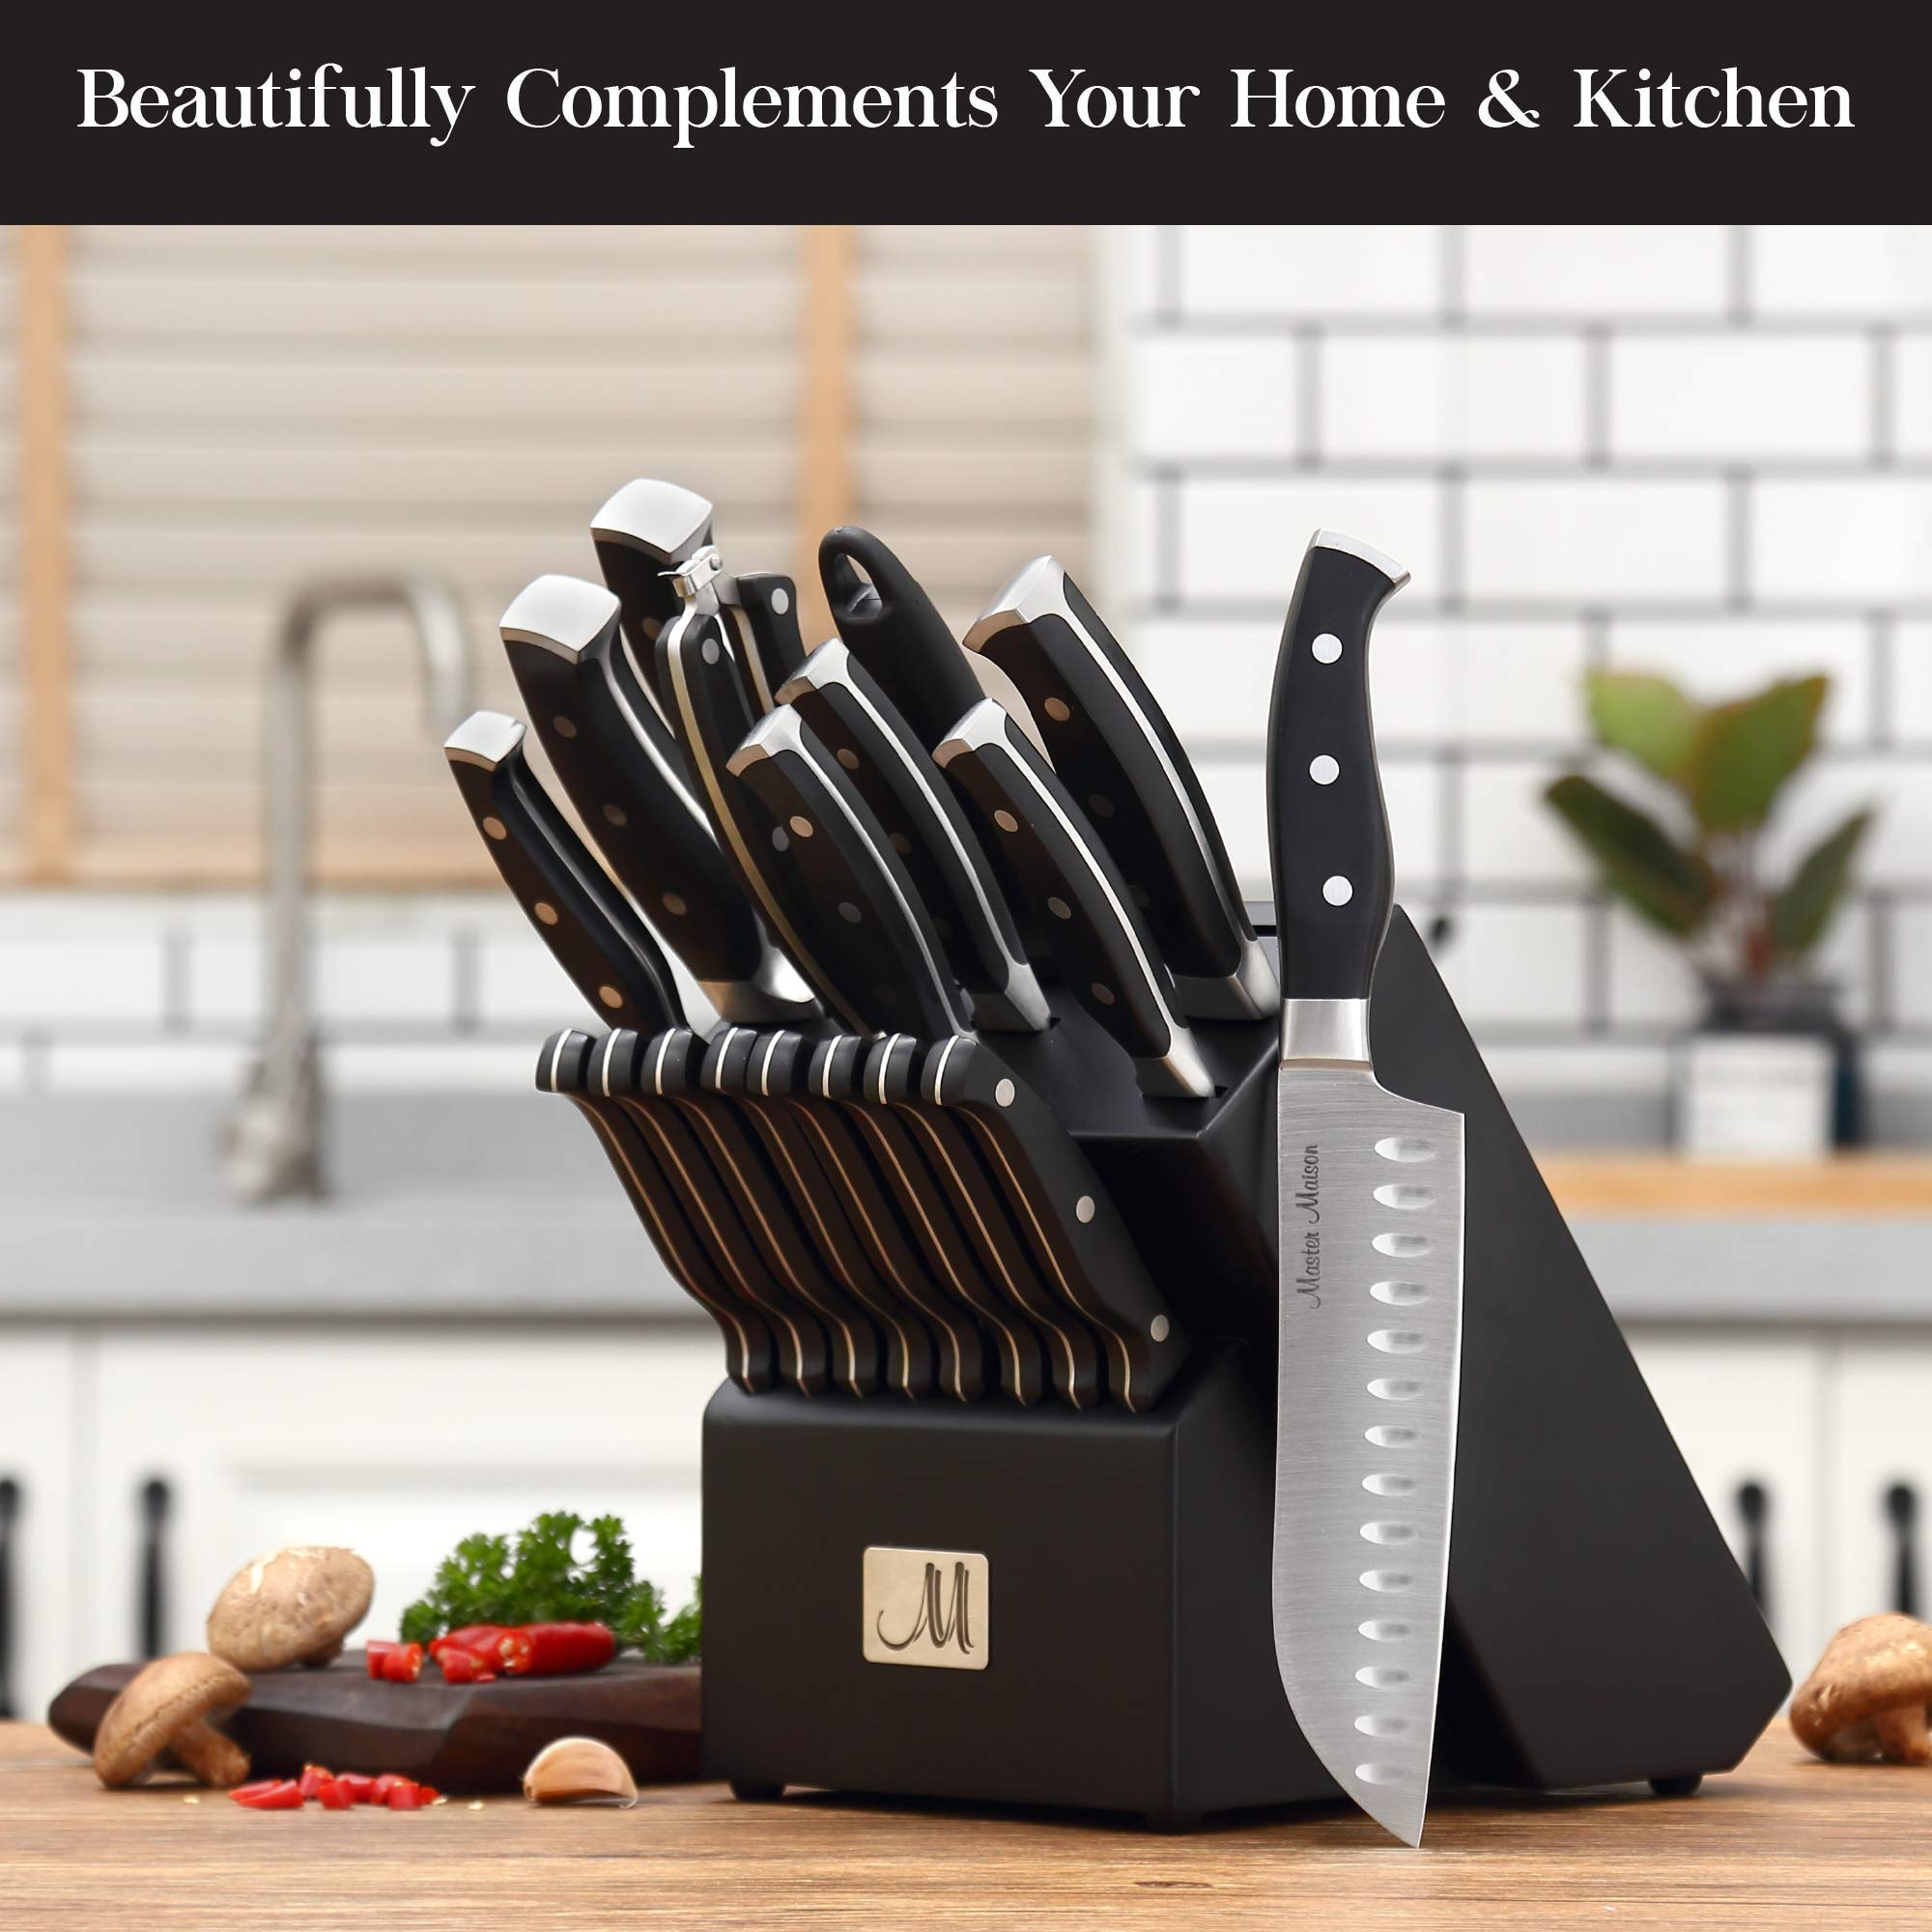 19-Piece Premium Kitchen Knife Set With Wooden Block | Master Maison German Stainless Steel Cutlery With Knife Sharpener & 8 Steak Knives by Master Maison (Image #5)